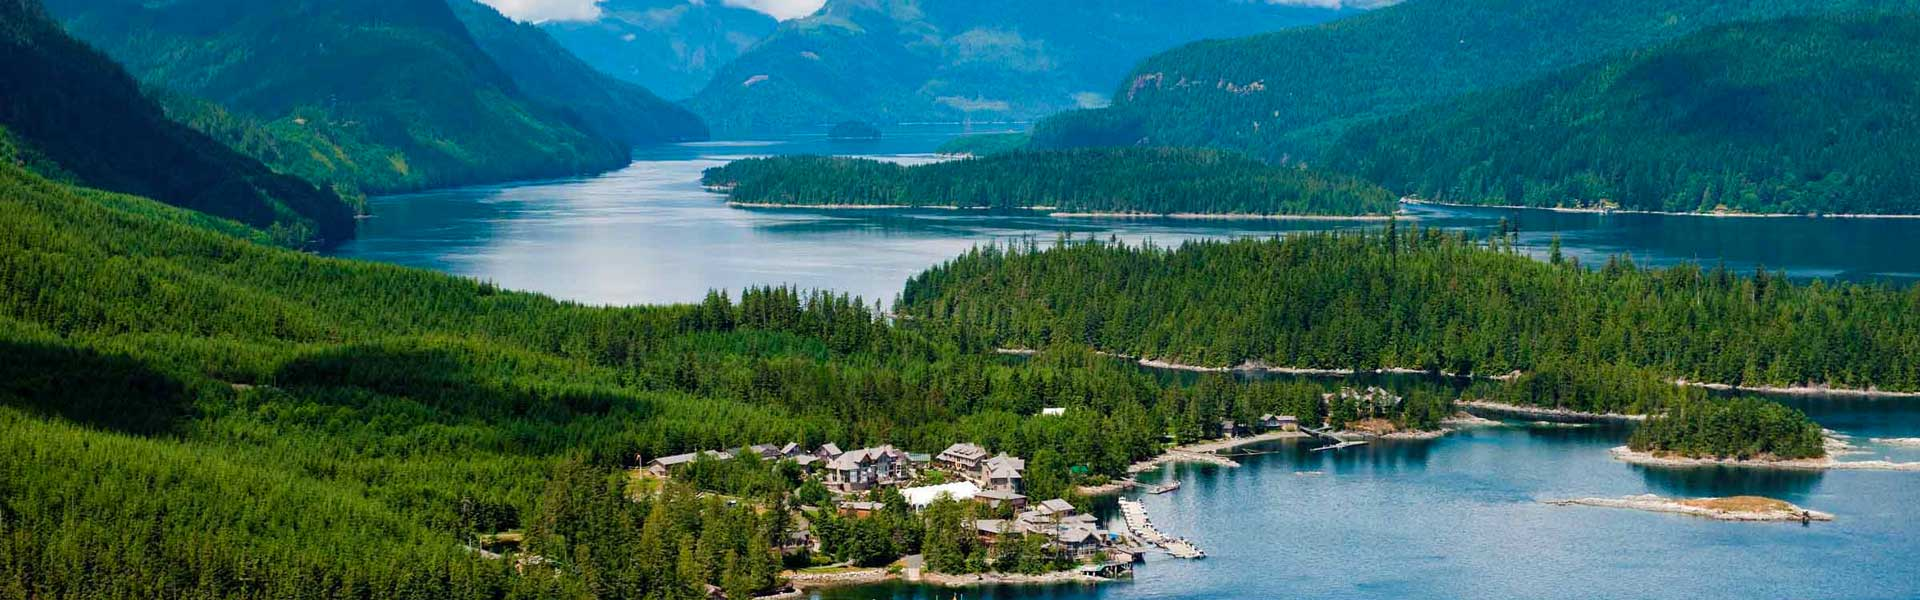 Vancouver Island | Tofino | Canada West Coast | Luxury Lodges & Road Trips